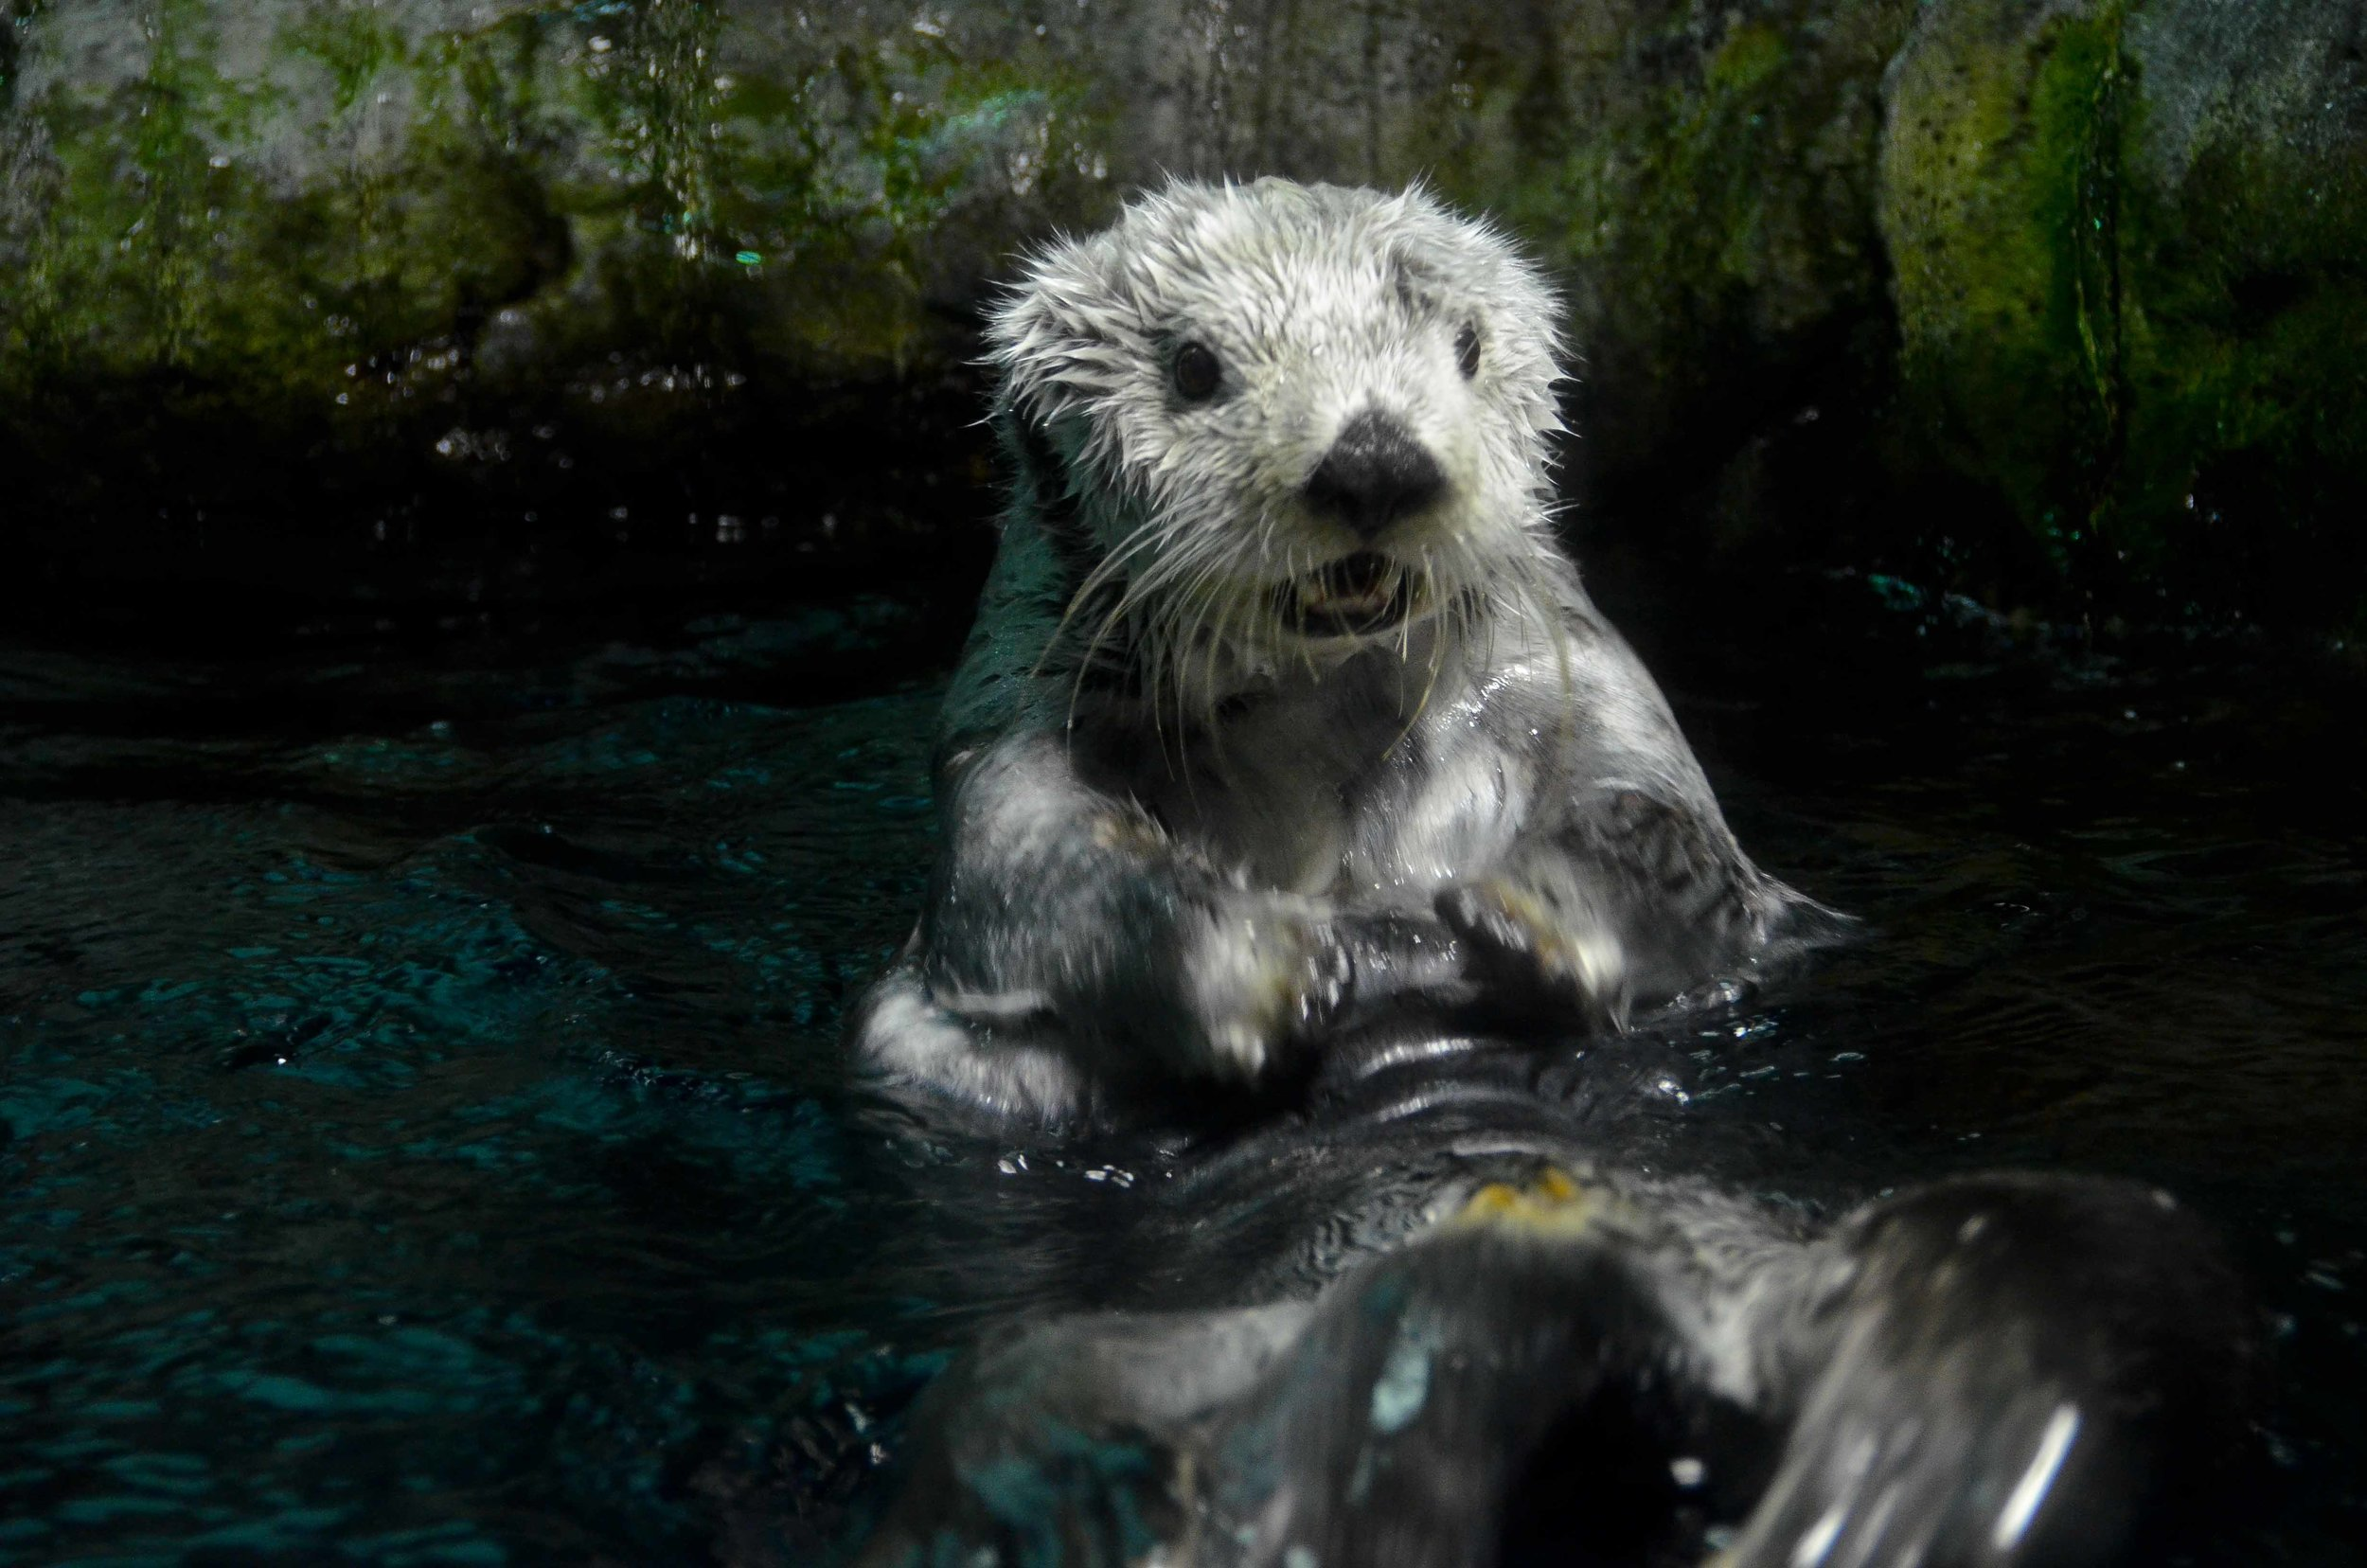 Sea Otter's Jaw Just Dropped in Surprise